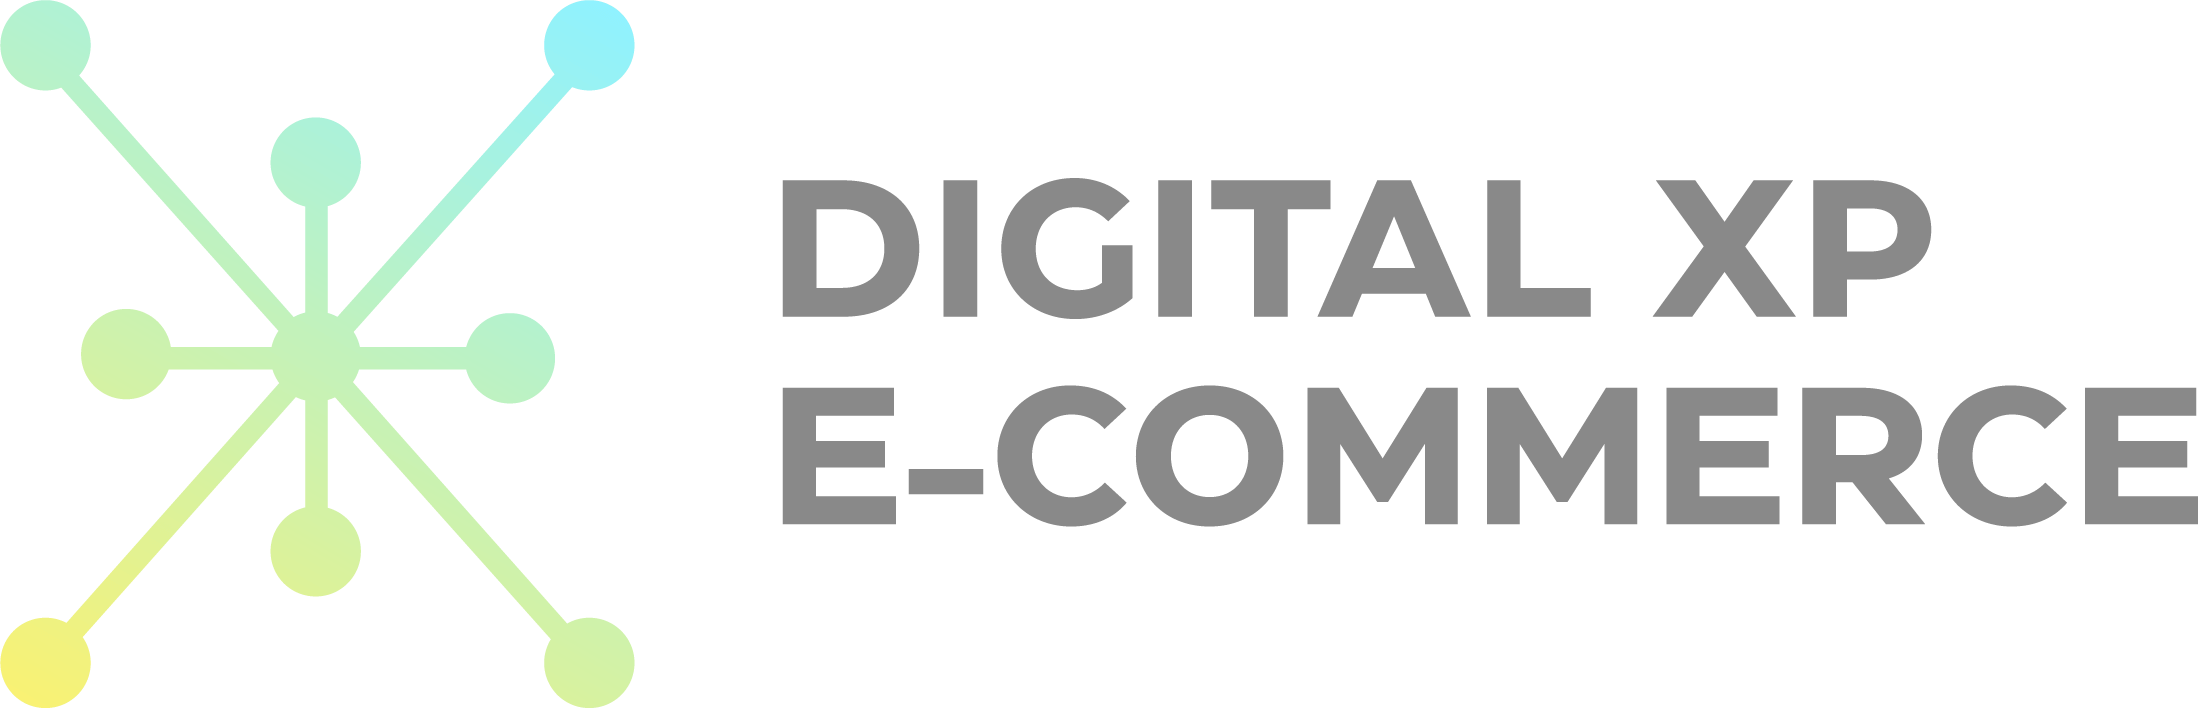 Digital Xp E-commerce